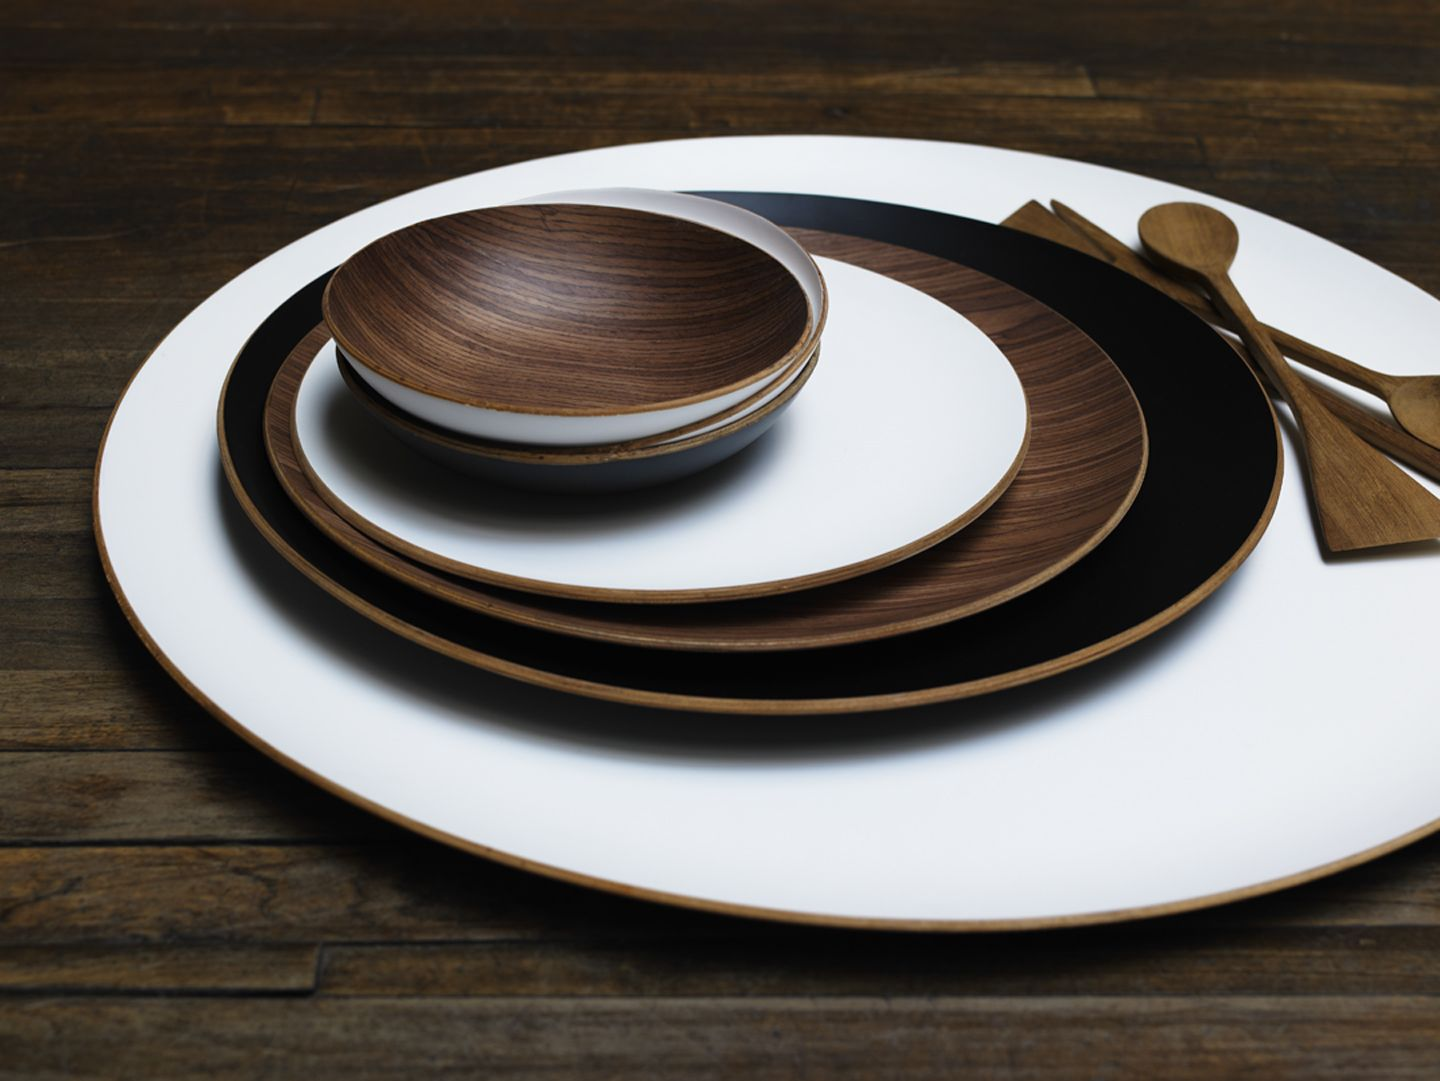 Round Wood Tray With Lacquer Finish Harabu House Round Wood Tray Wood Tray Wooden Tray